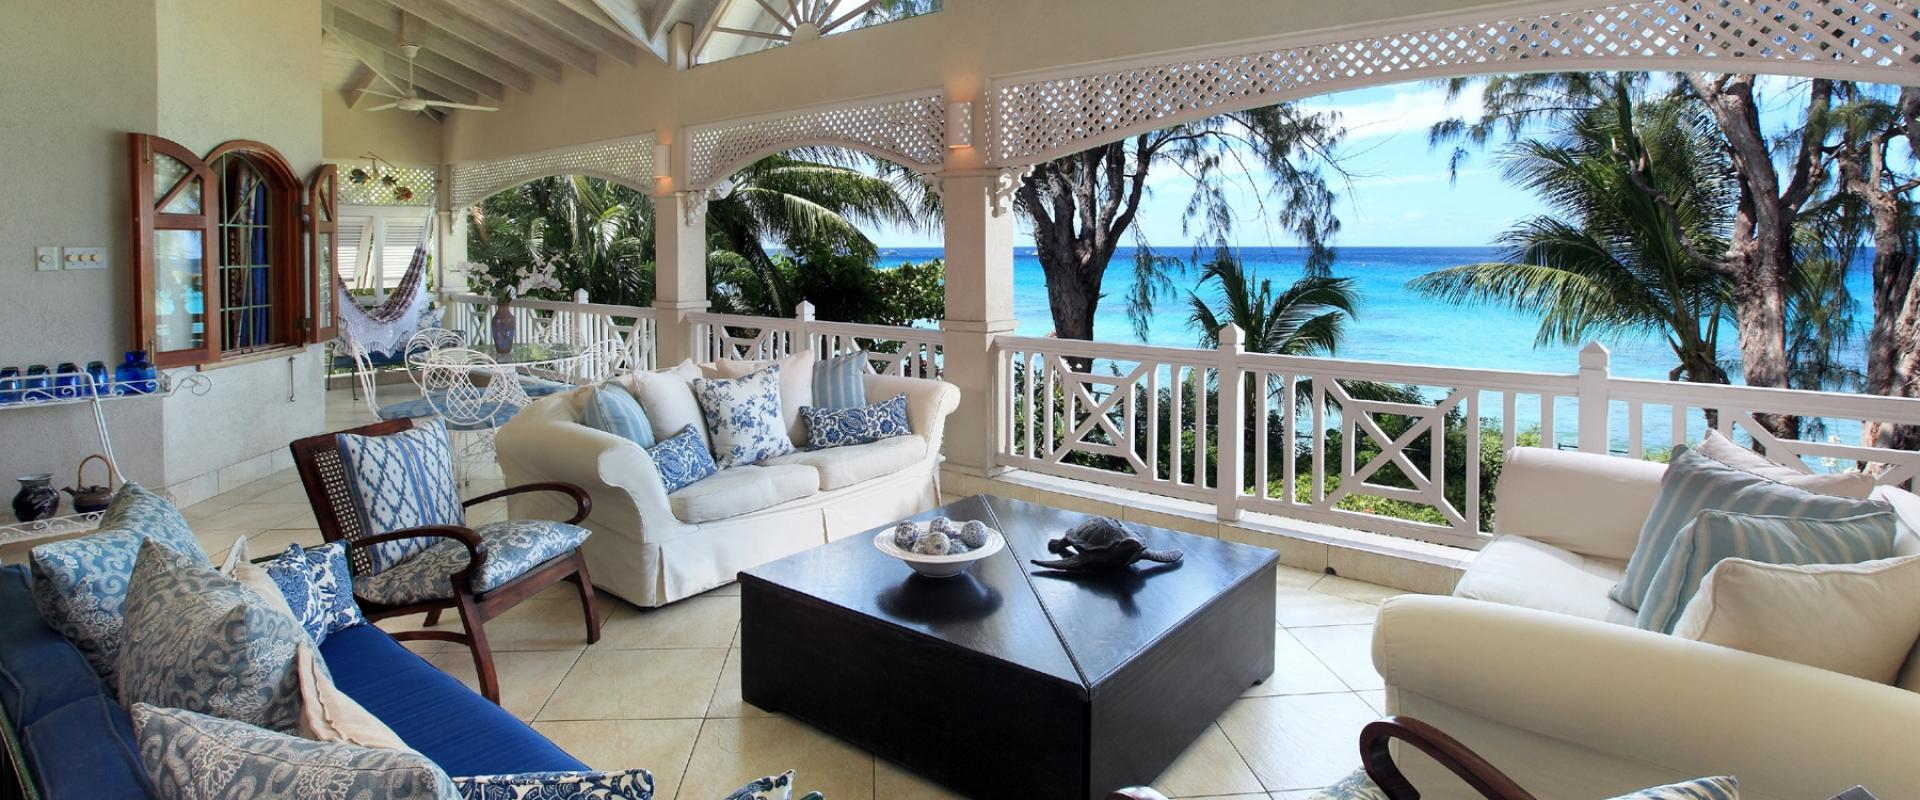 La Paloma Beachfront West Coast For Holiday Villa Rentals